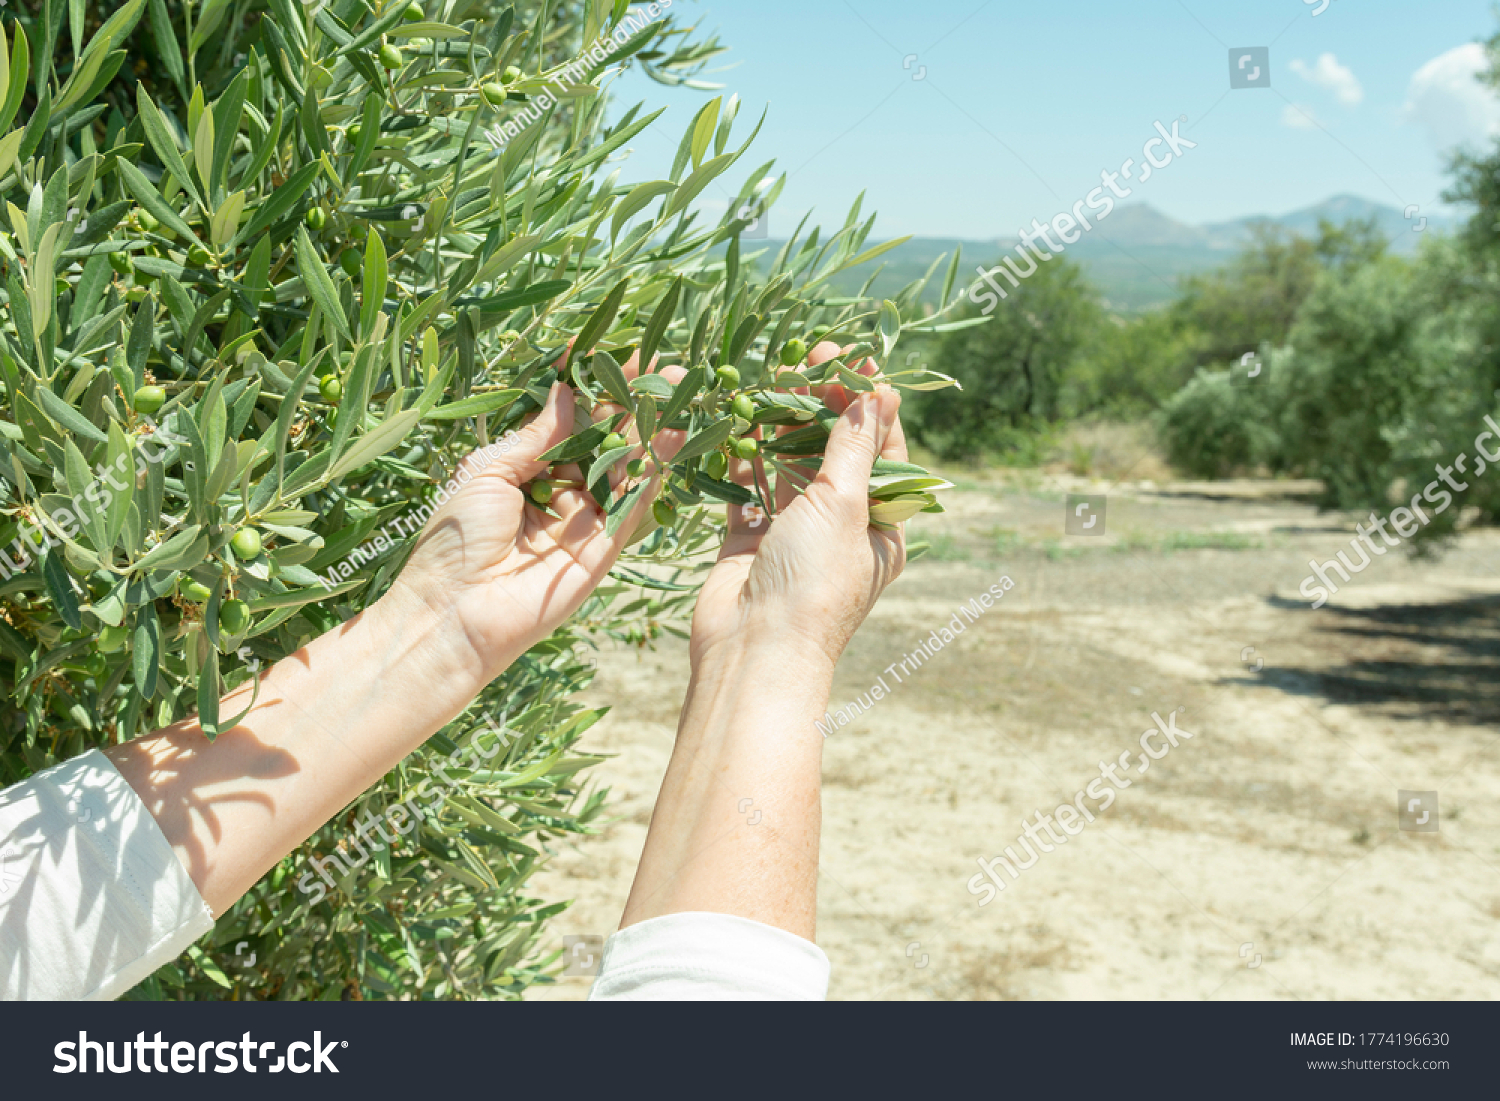 stock-photo-hands-show-the-new-harvest-o